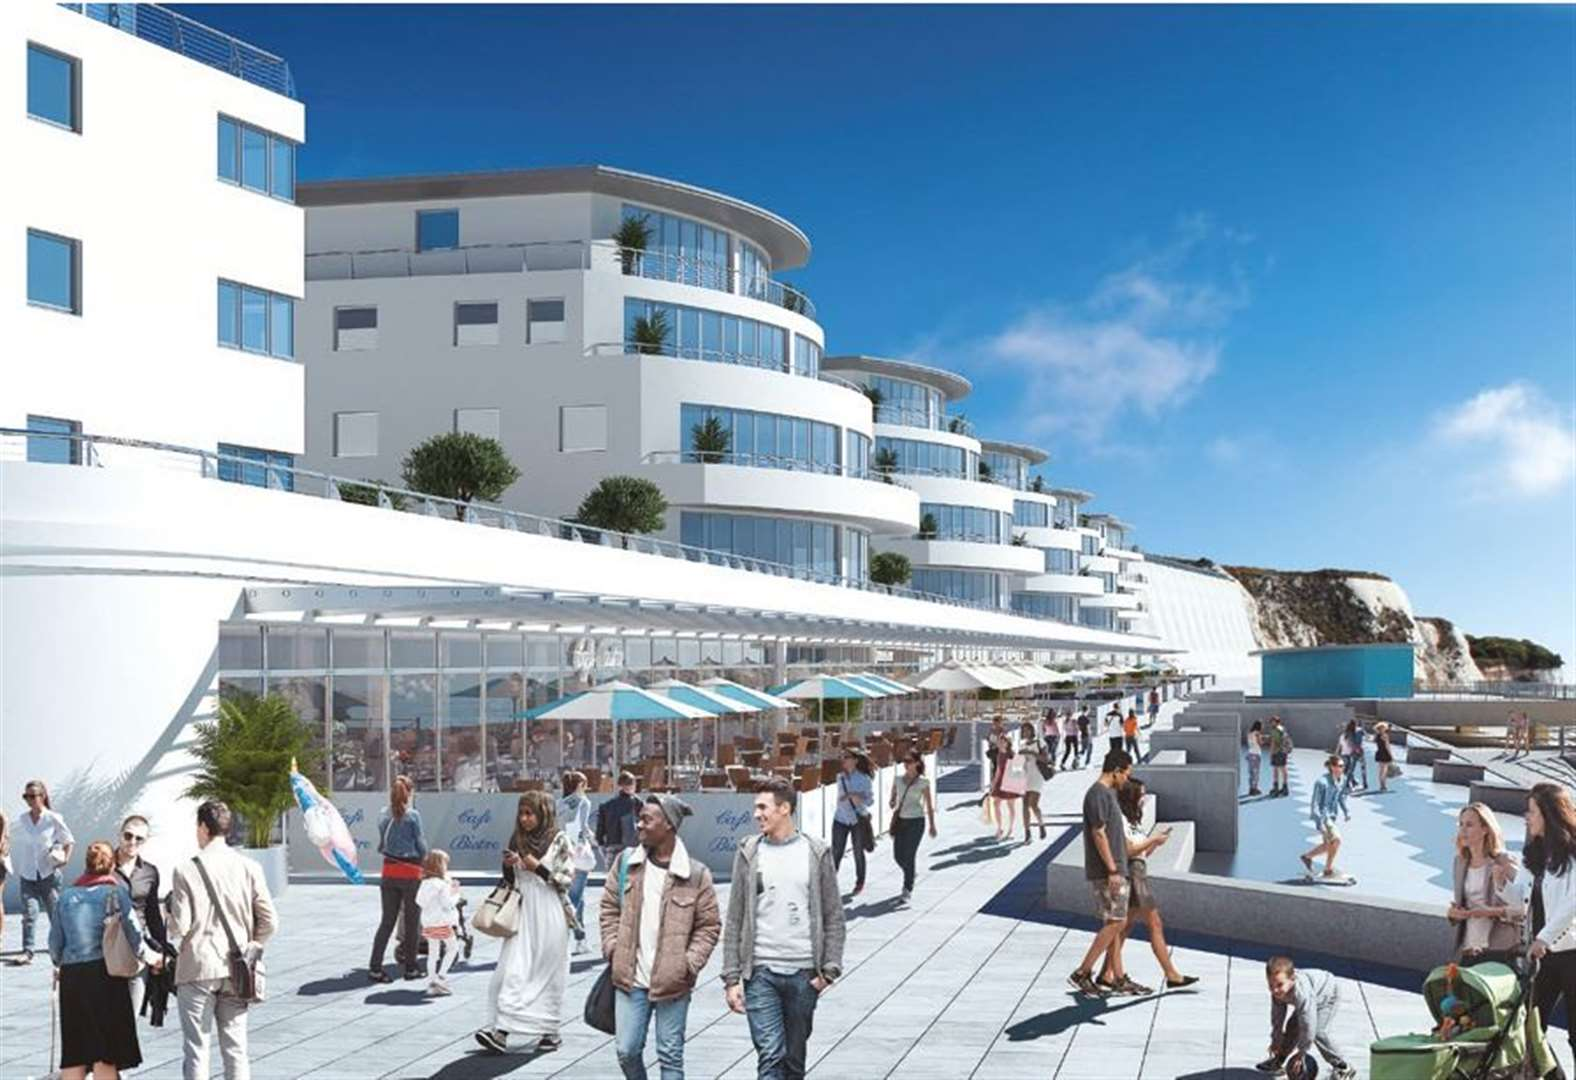 Luxury seafront apartments snapped up - but more to go on sale